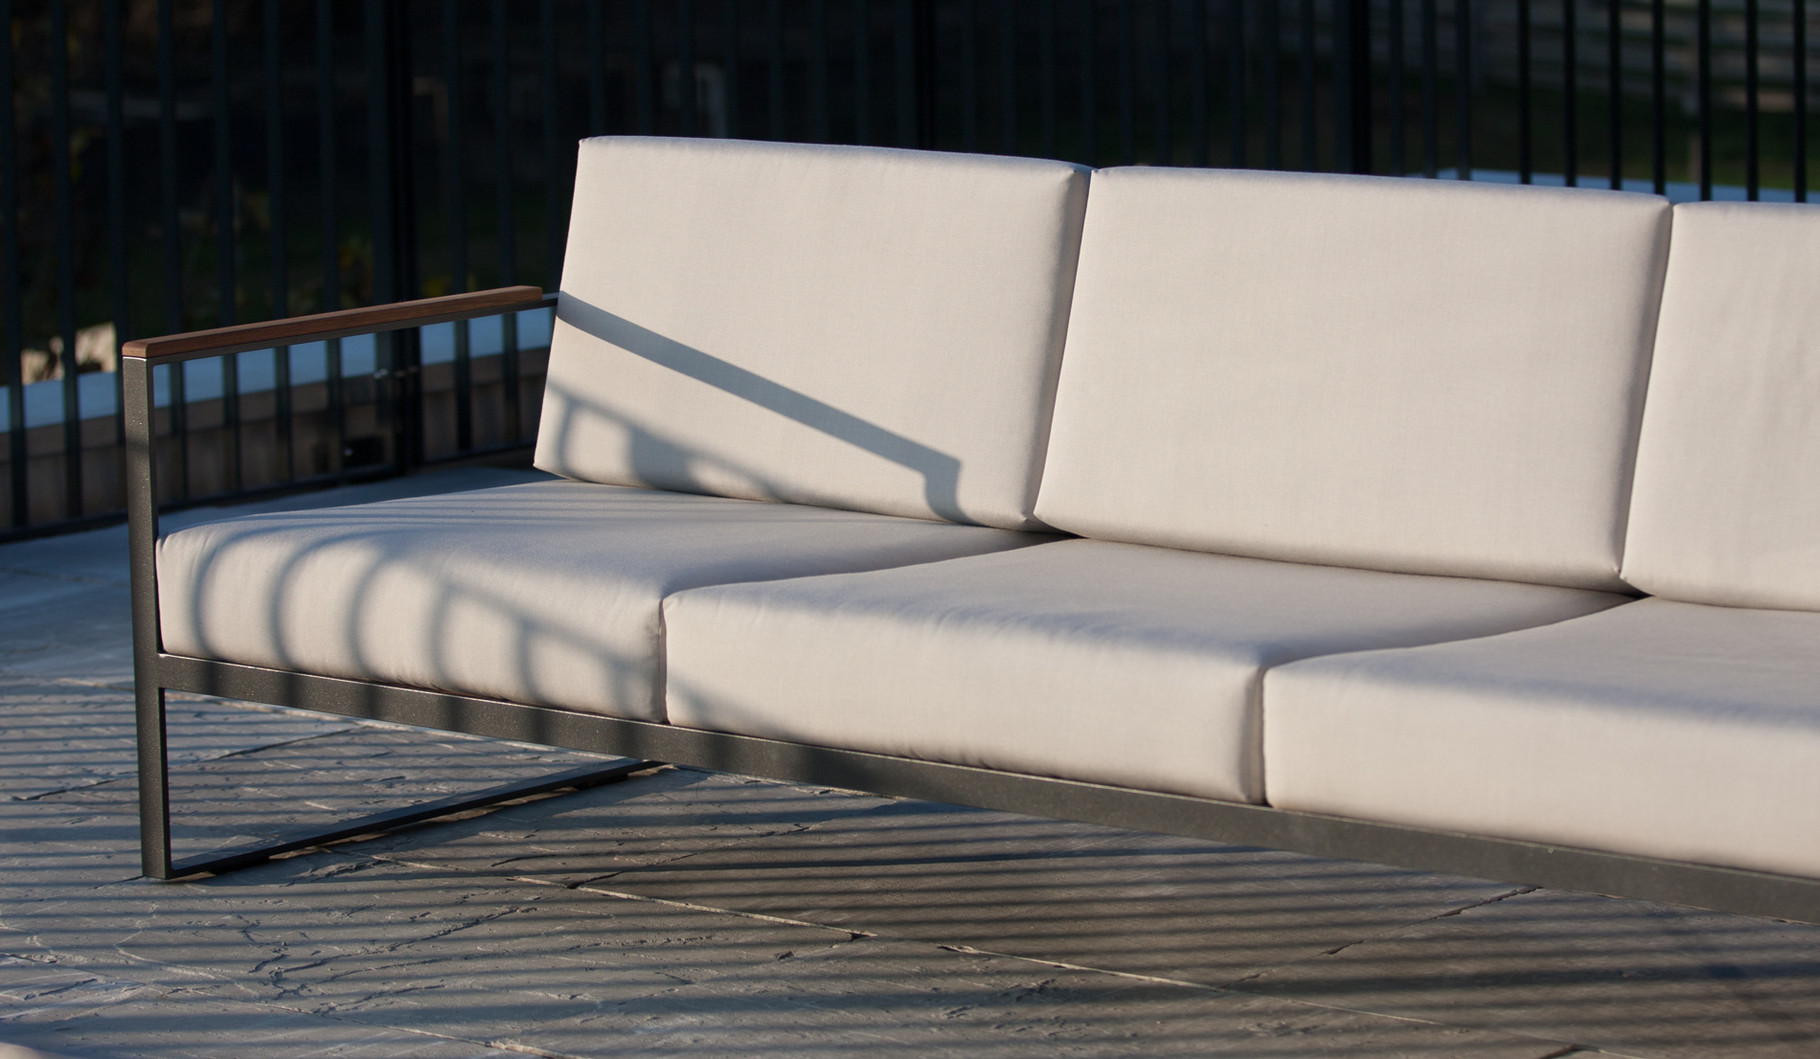 Lounge Garten Garten Lounge Chair Loungemöbel Design Metall Lounge